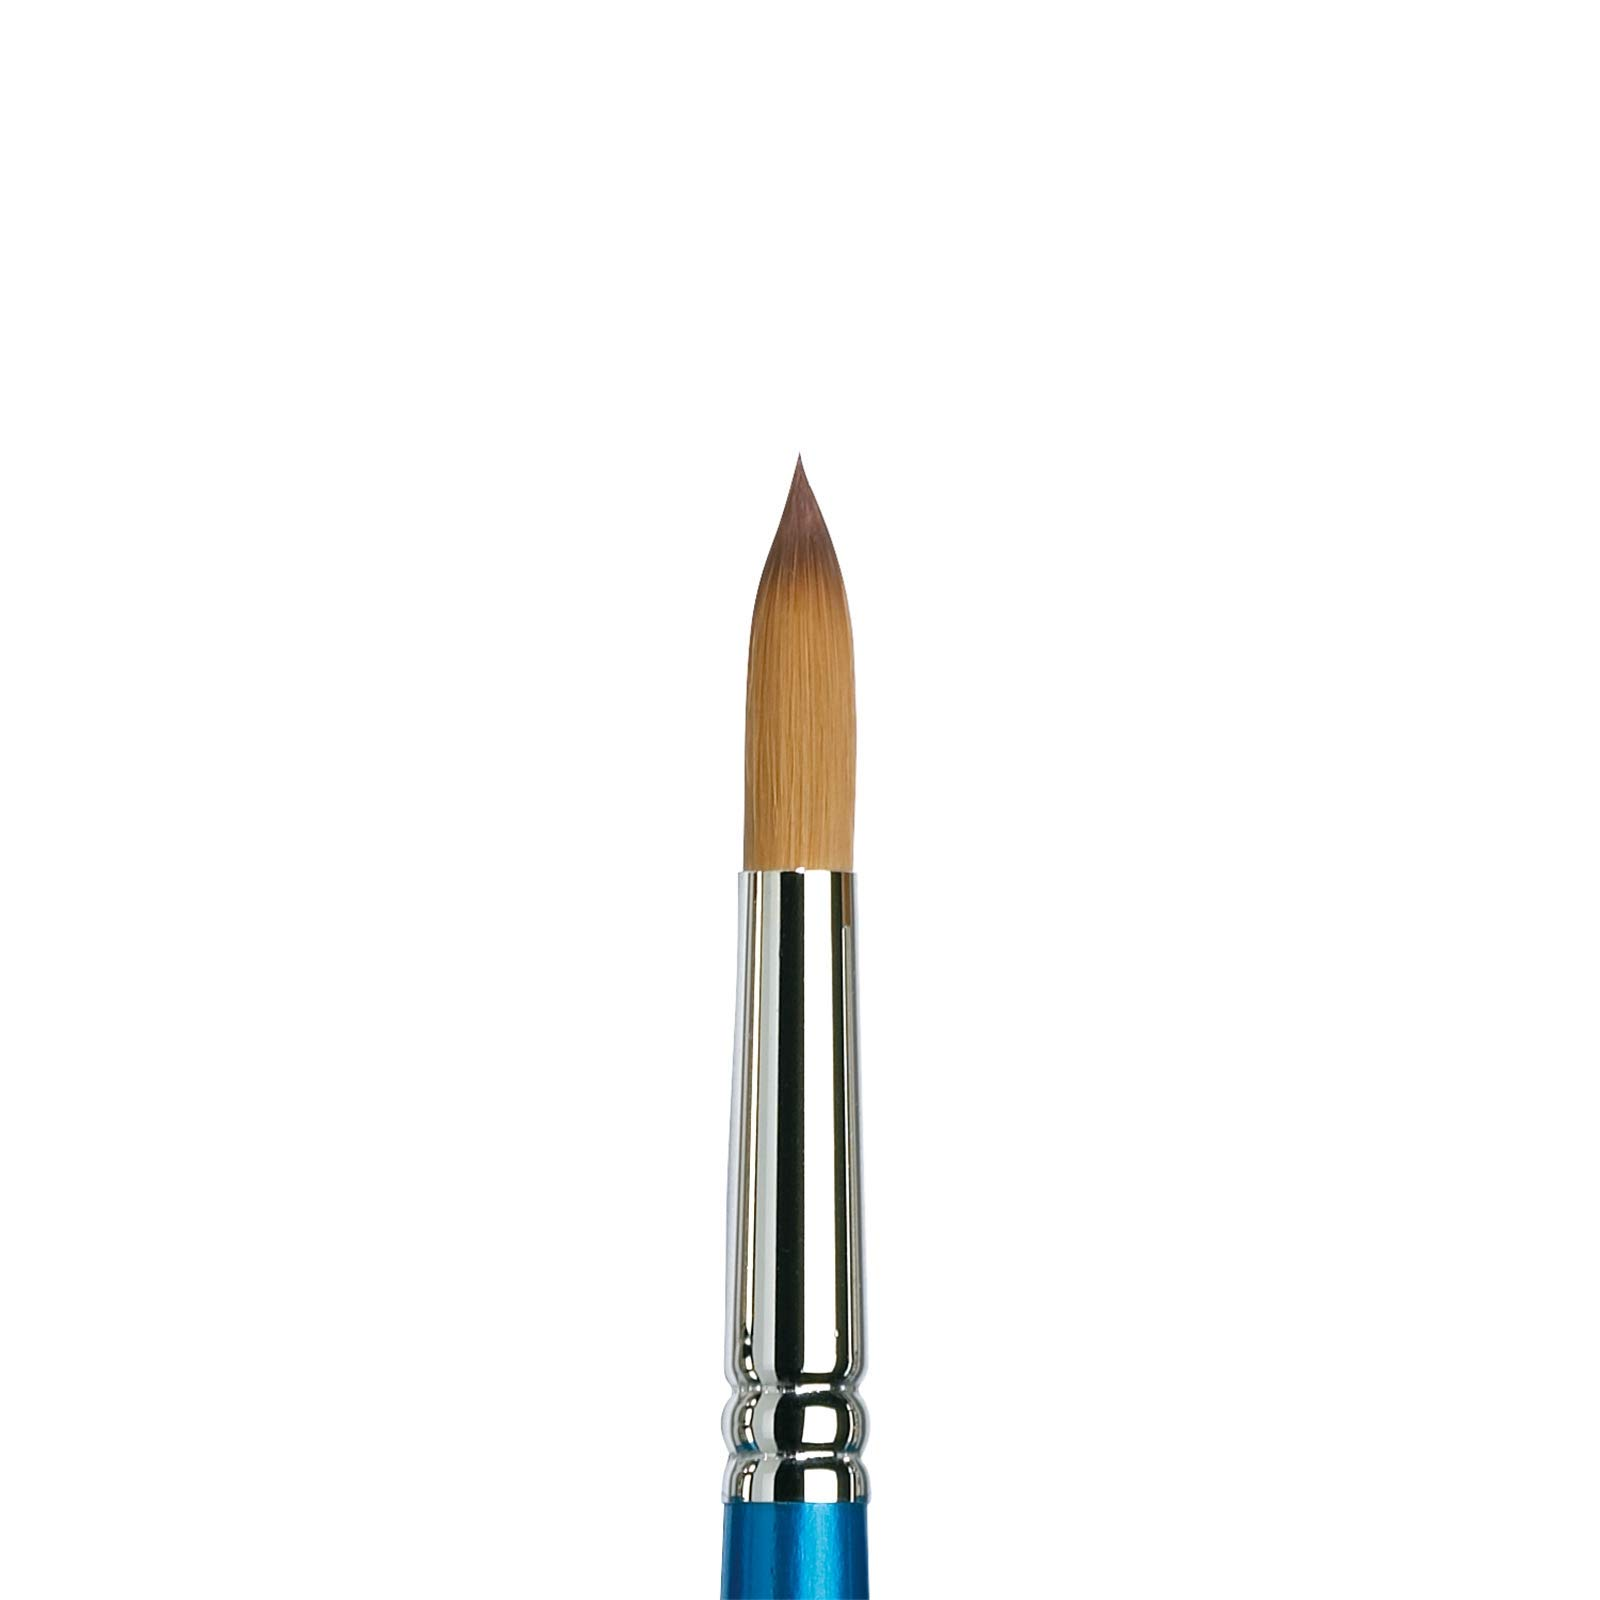 Winsor & Newton Cotman Water Colour Series 111 Short Handle Synthetic Brush - Round #12 by Winsor & Newton